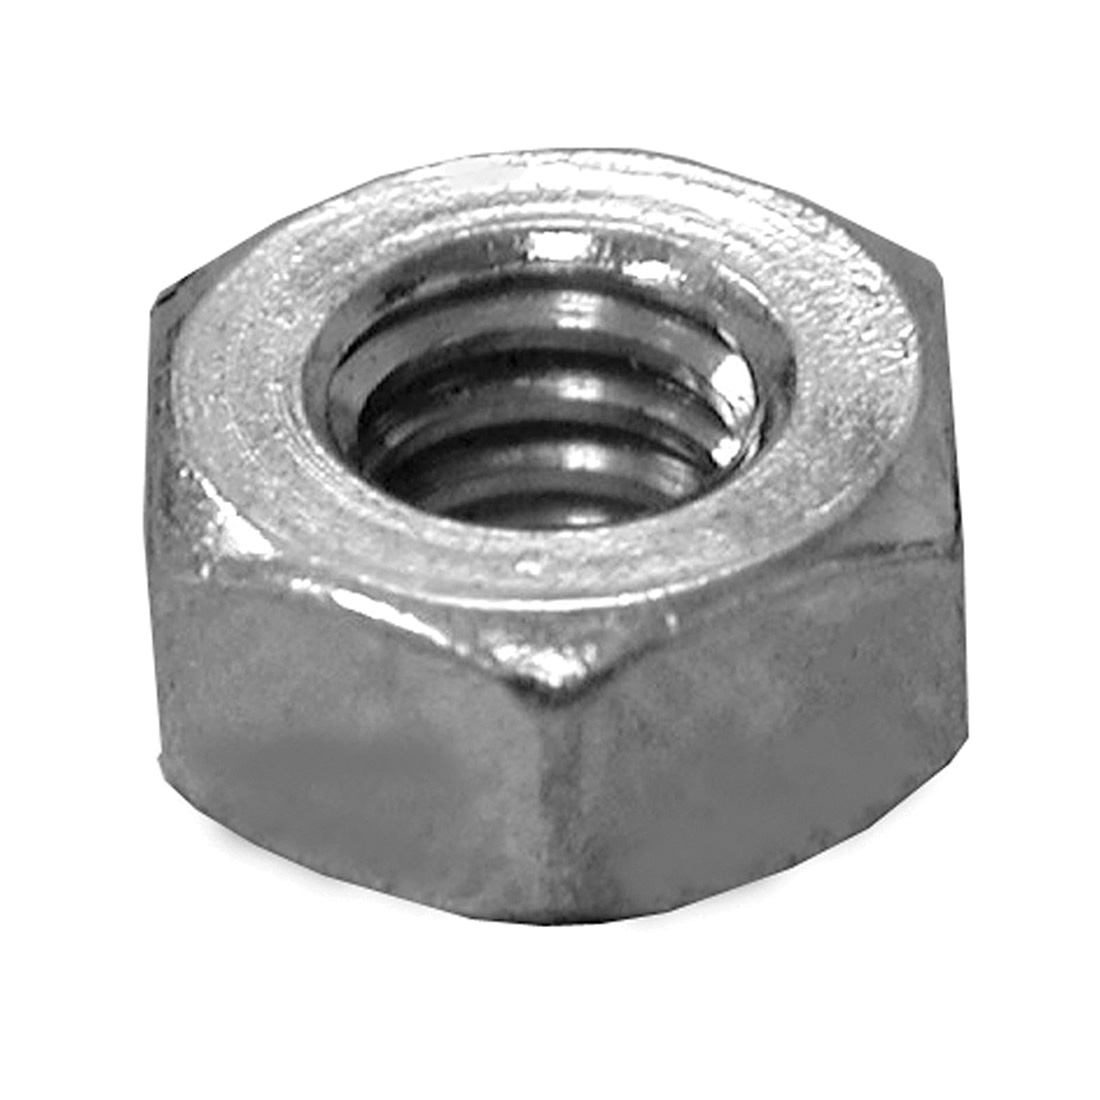 "3/8"" Hex Nut - Chrome Plated"